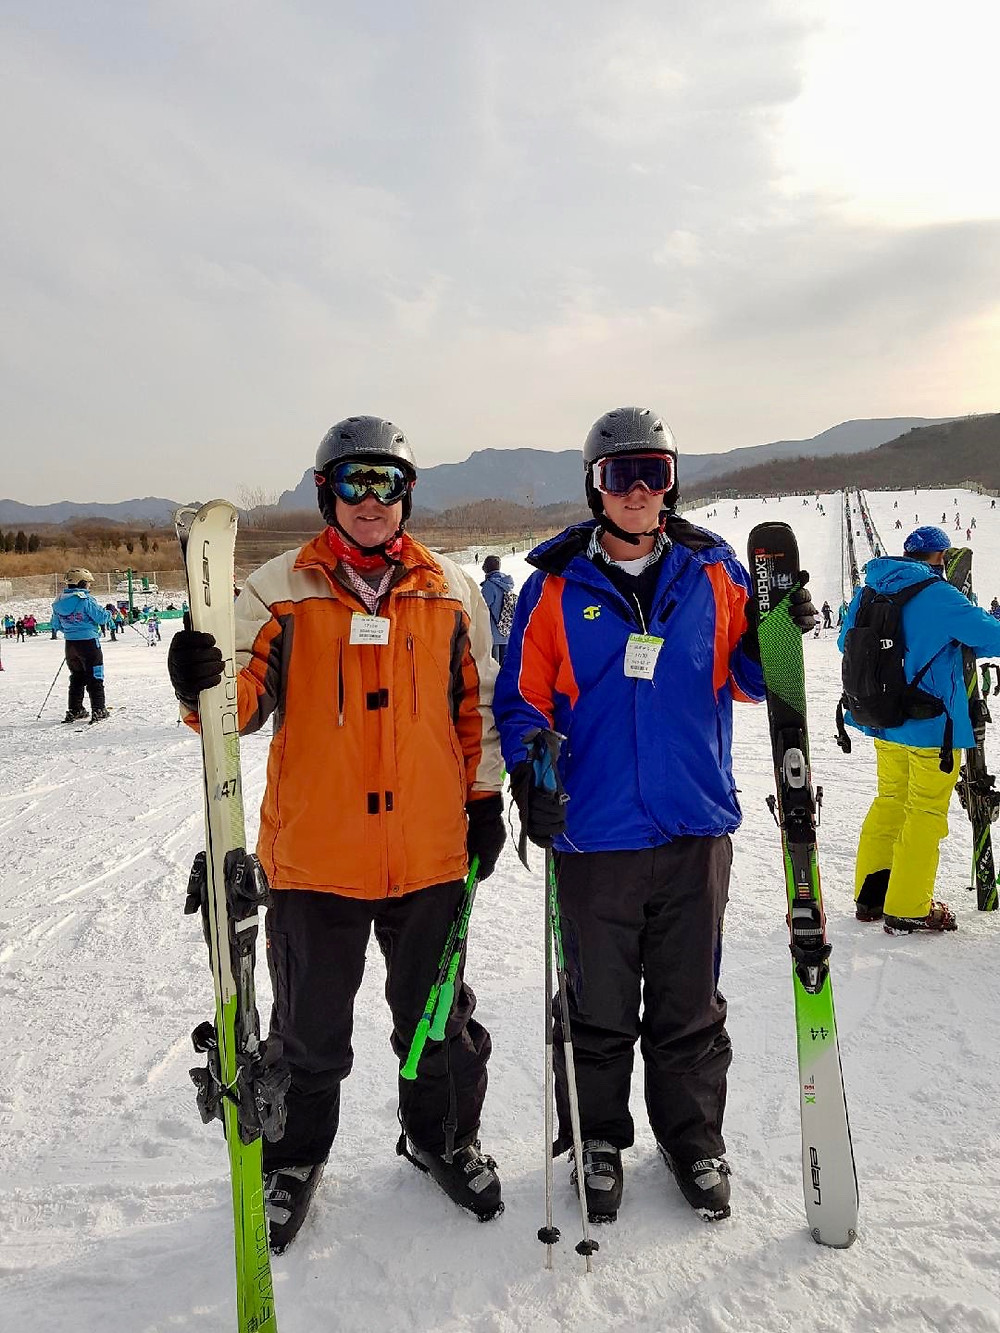 Leo & Clancy ready to hit the slopes